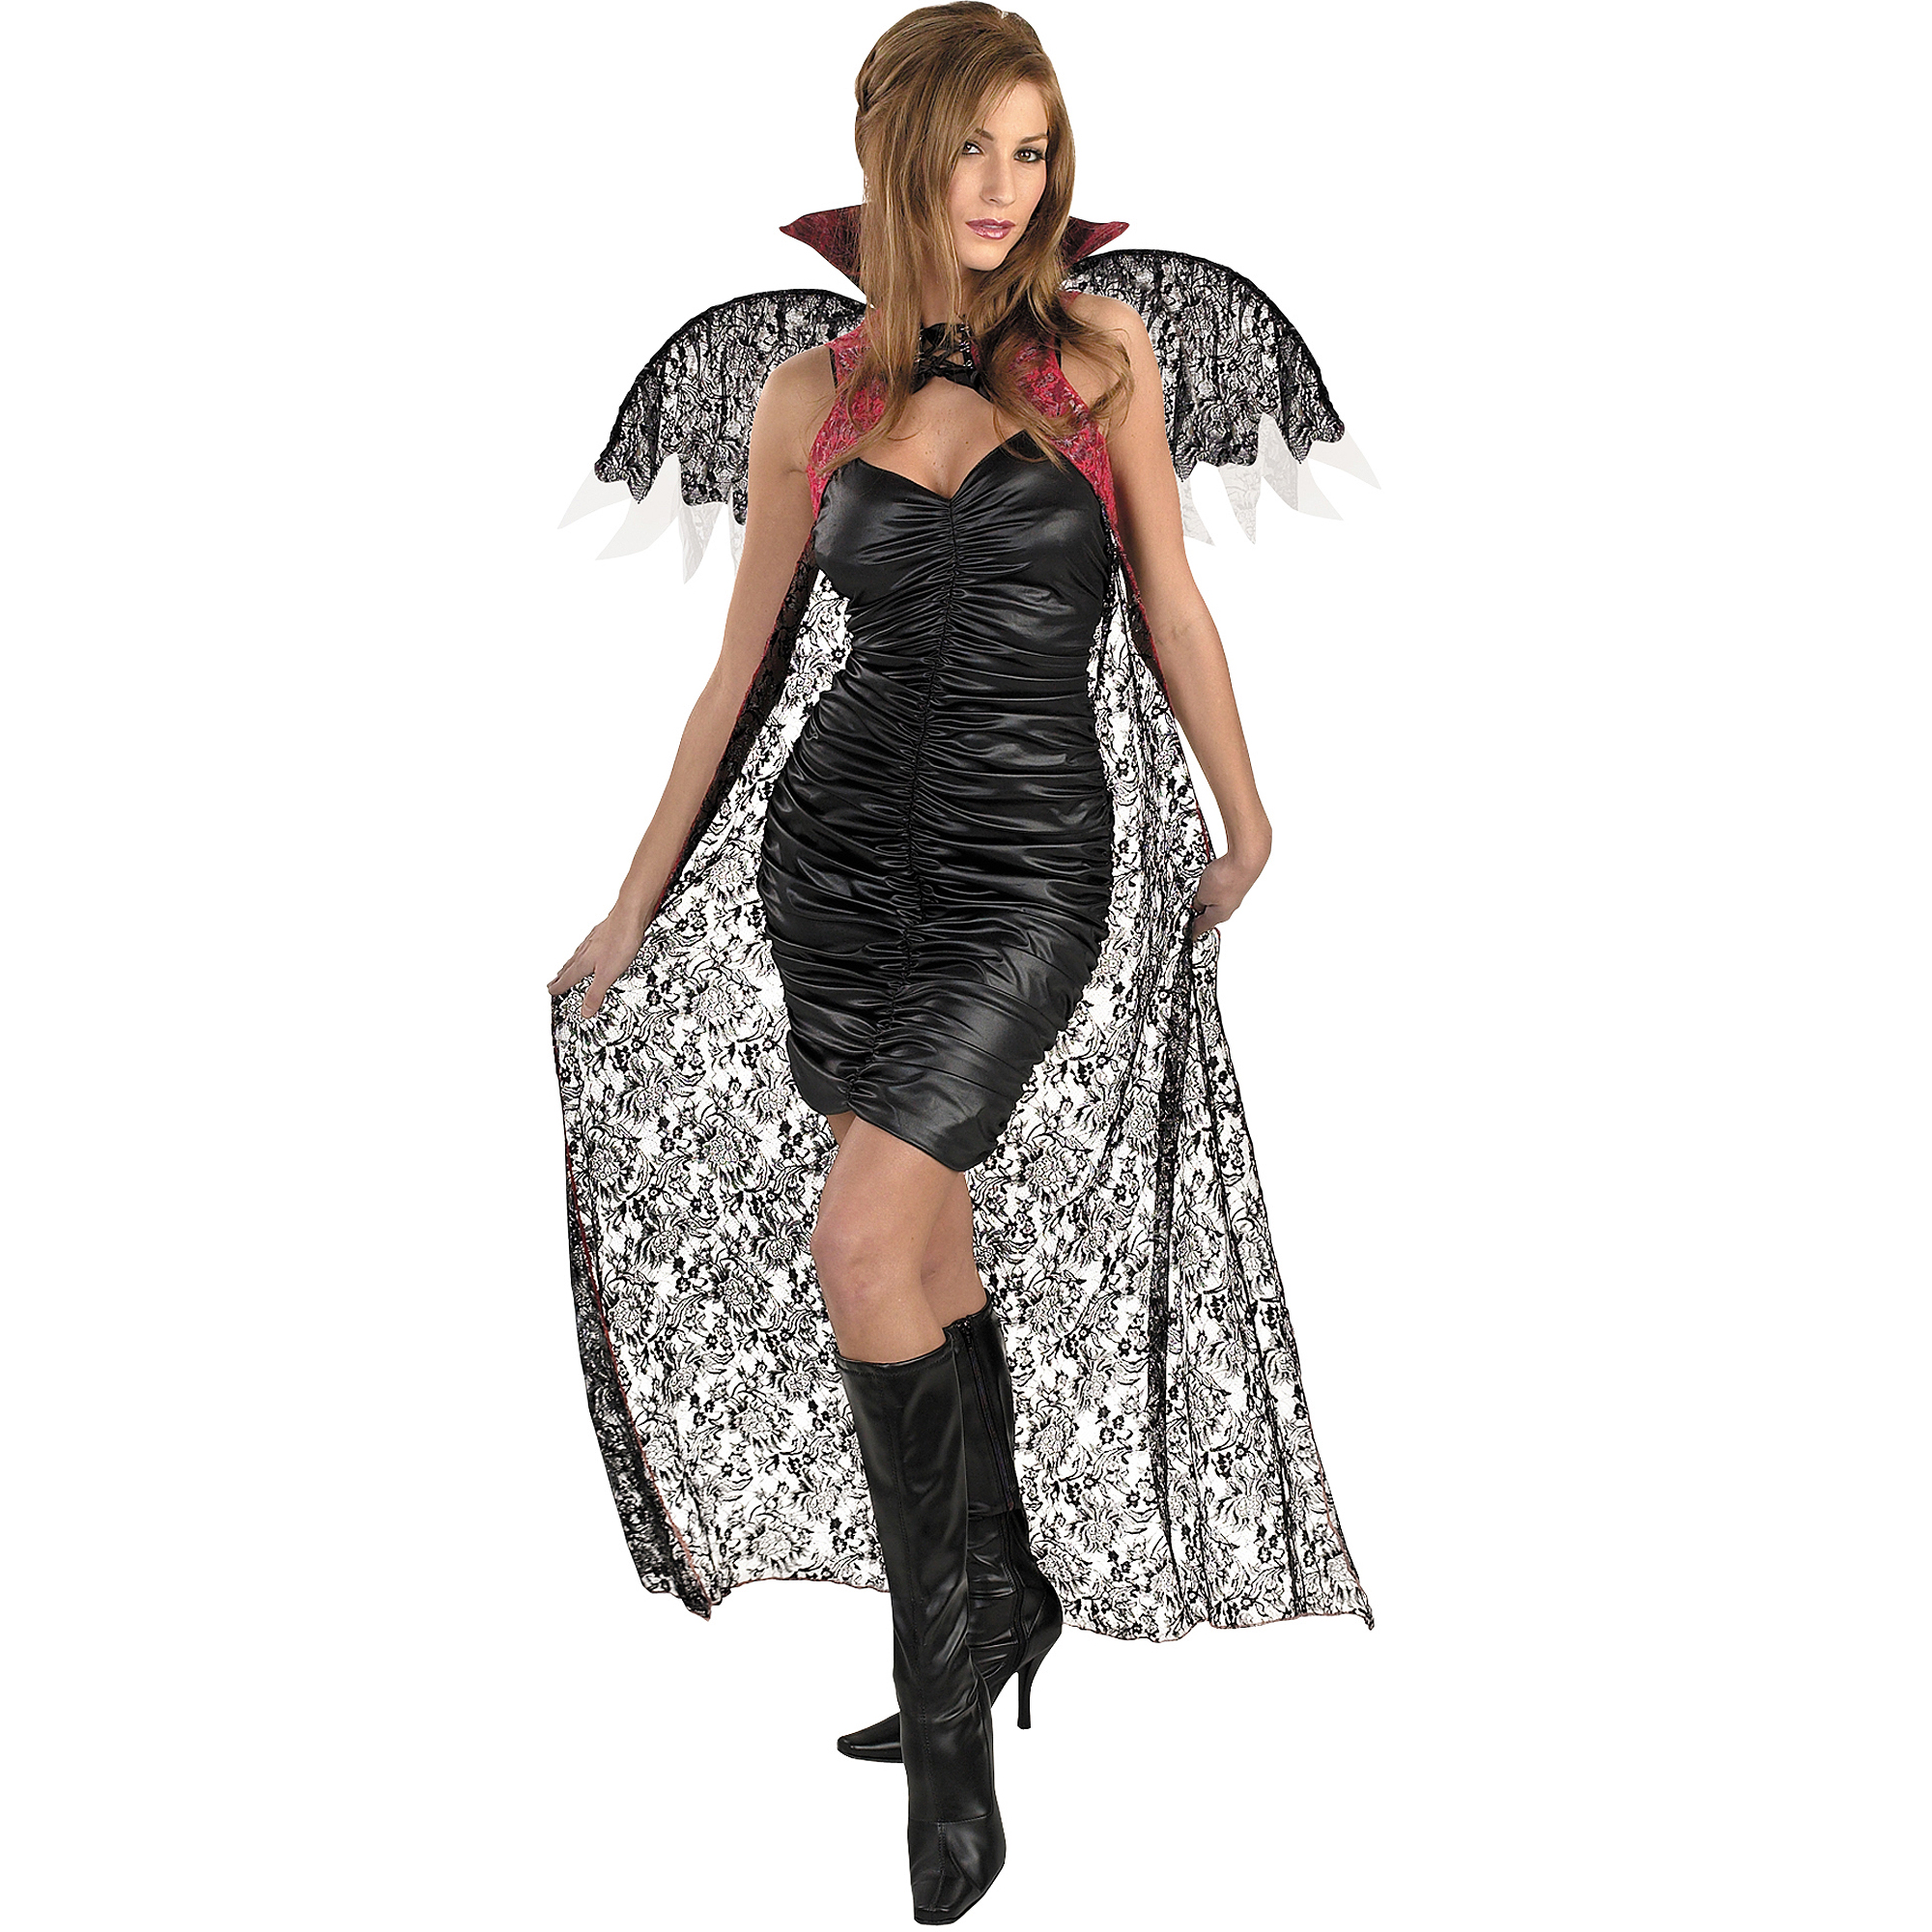 Red and Black Lace Cape with Wings Adult Halloween Costume